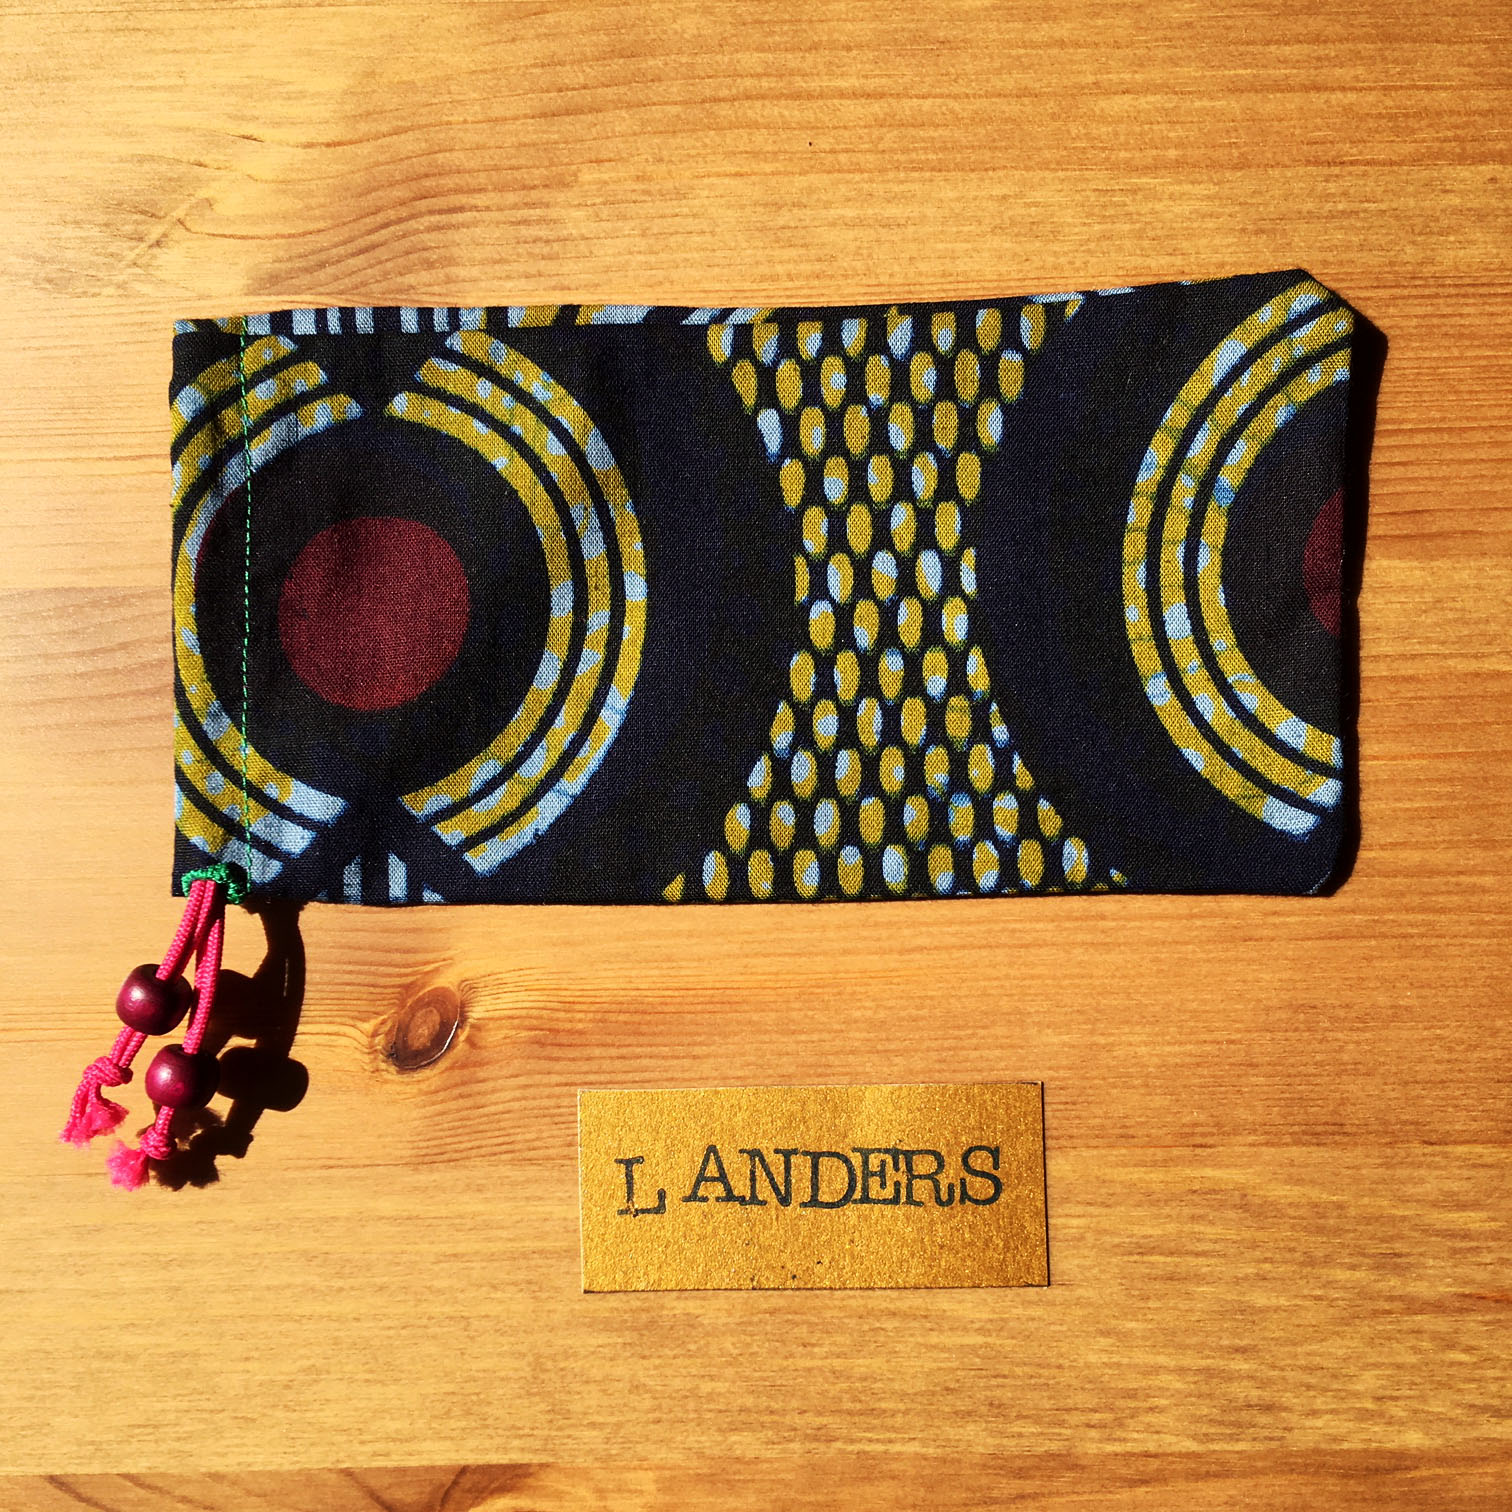 Landers_sunglasses case